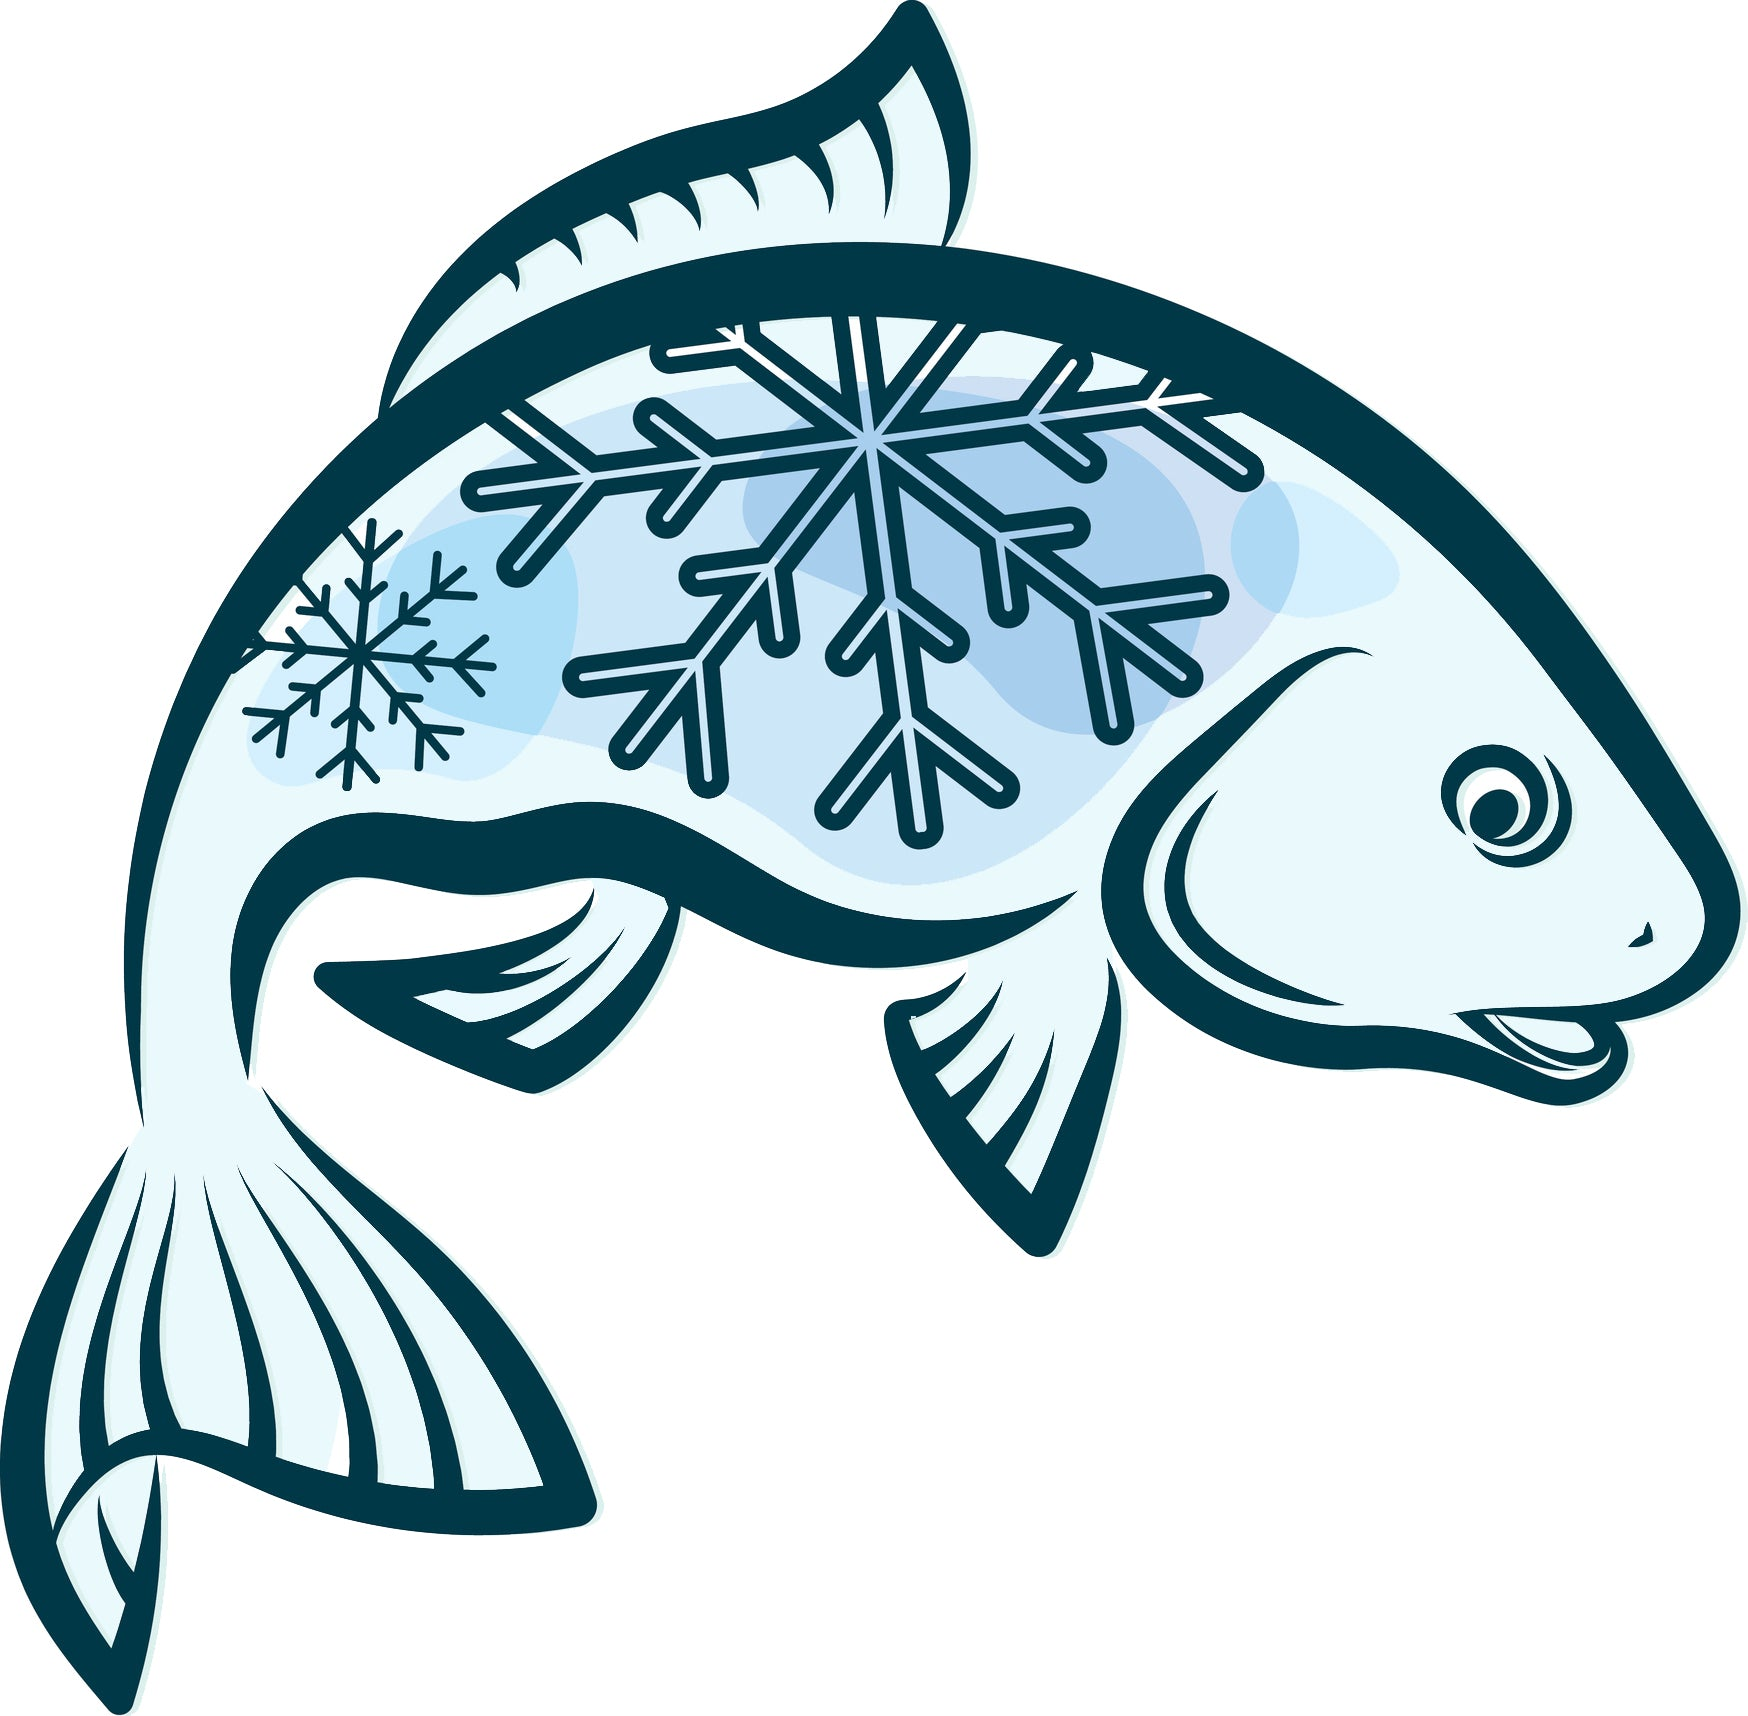 Cool Winter Blue Fisherman Fish with Snowflakes  Cartoon Vinyl Decal Sticker